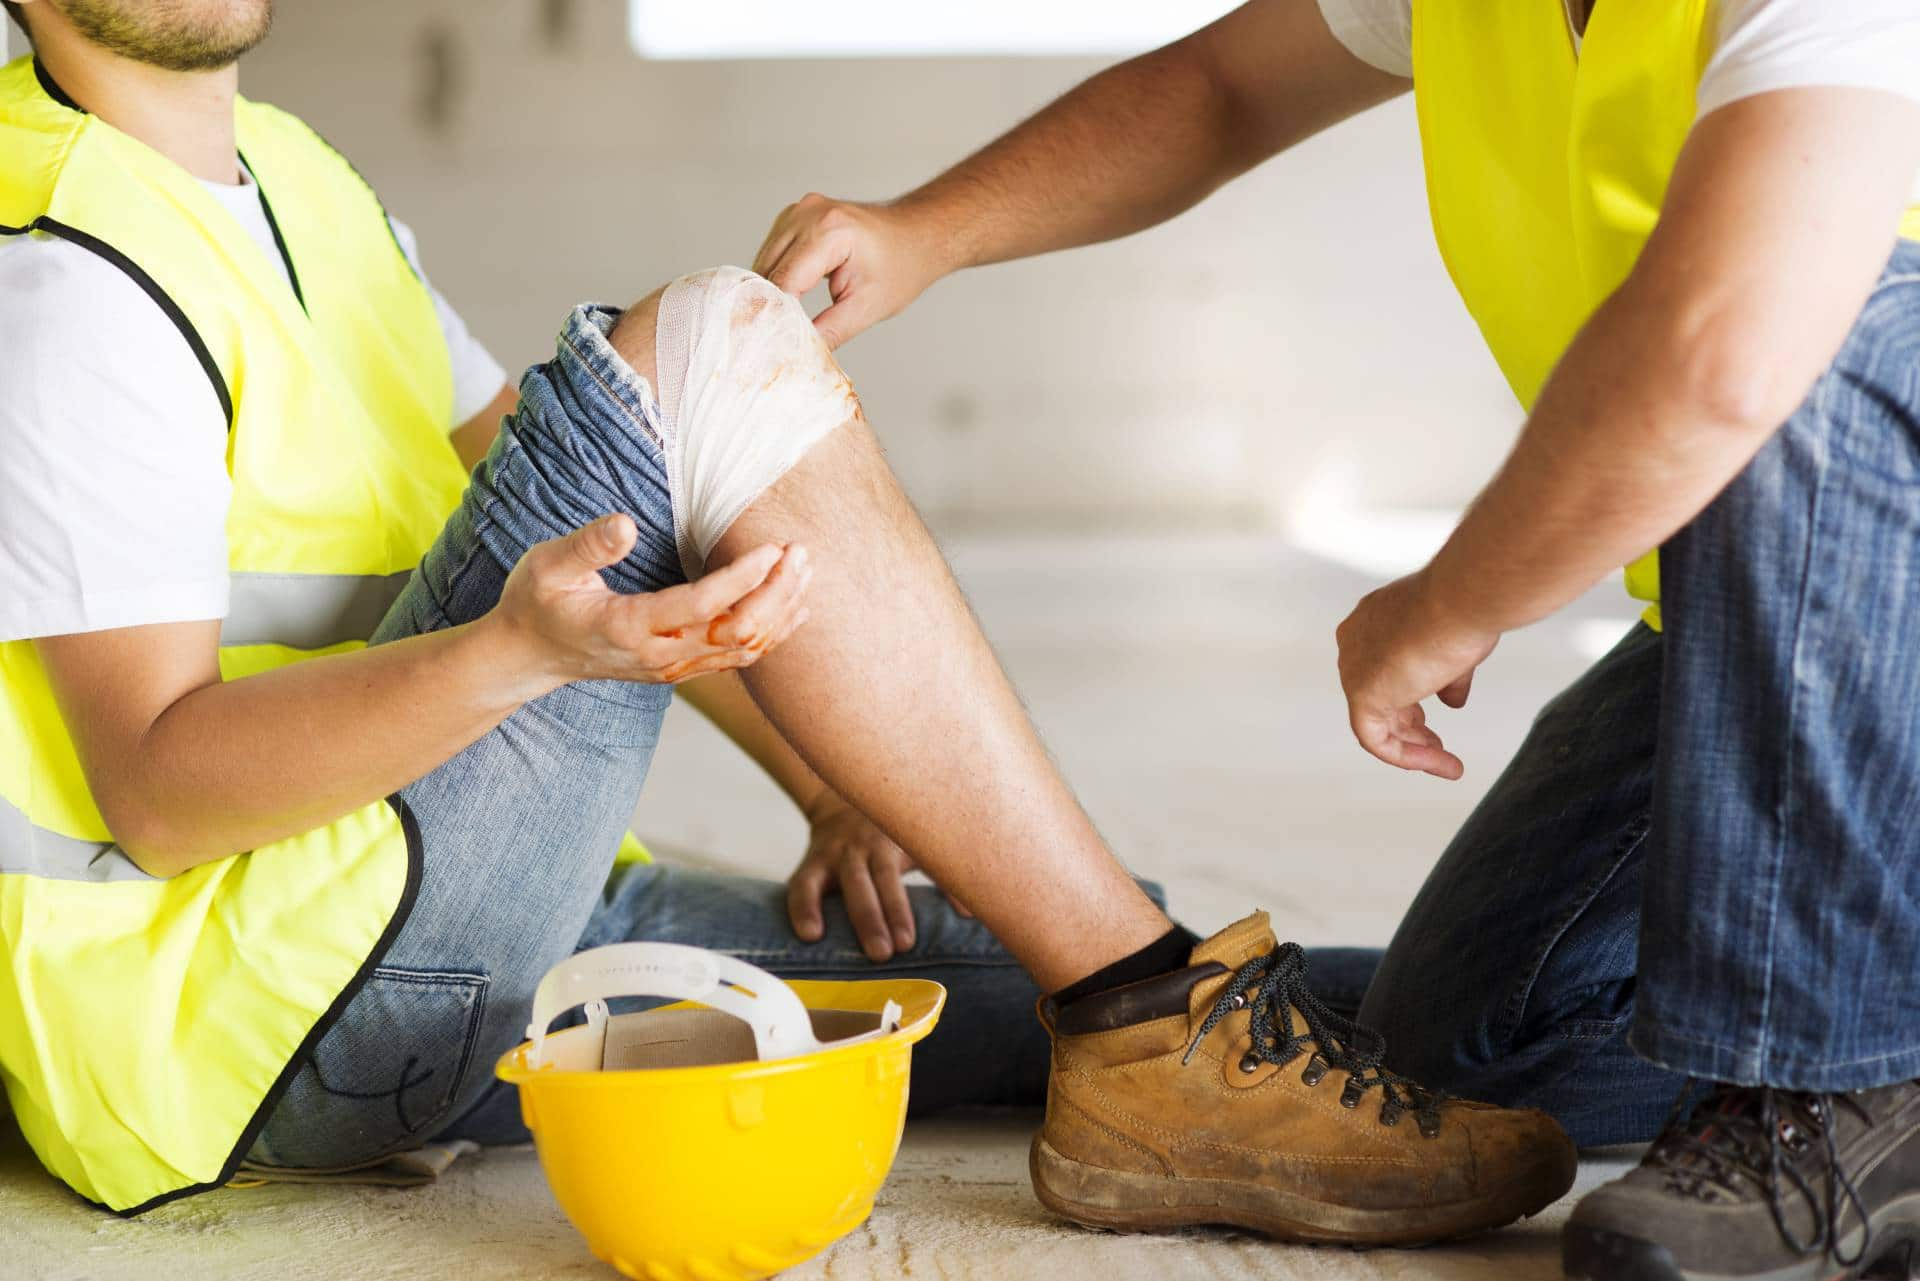 Hurt on the job? Schedule a free consultation with our personal injury lawyers at the Angell Firm in Garden Hills.